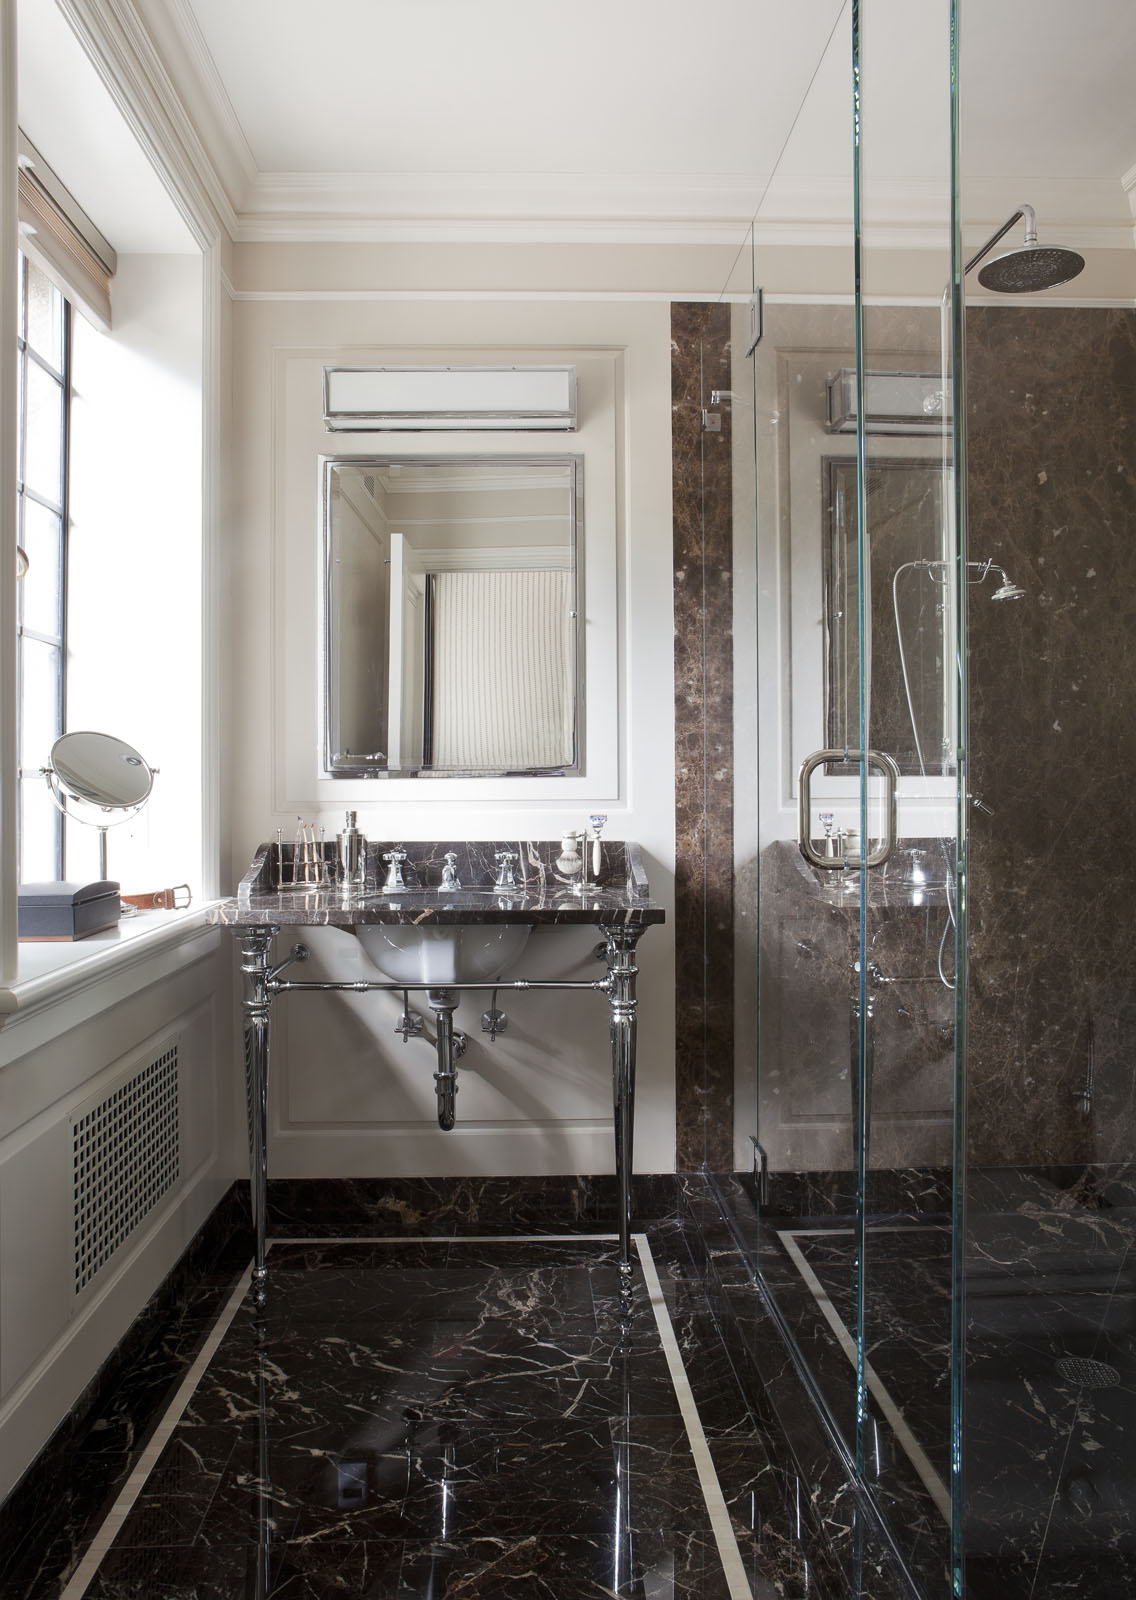 The husband's sleek bath features a wall light by  Circa Lighting  , an  Urban Archaeology  vanity, and a mirror and shower fittings by  Lefroy Brooks  .